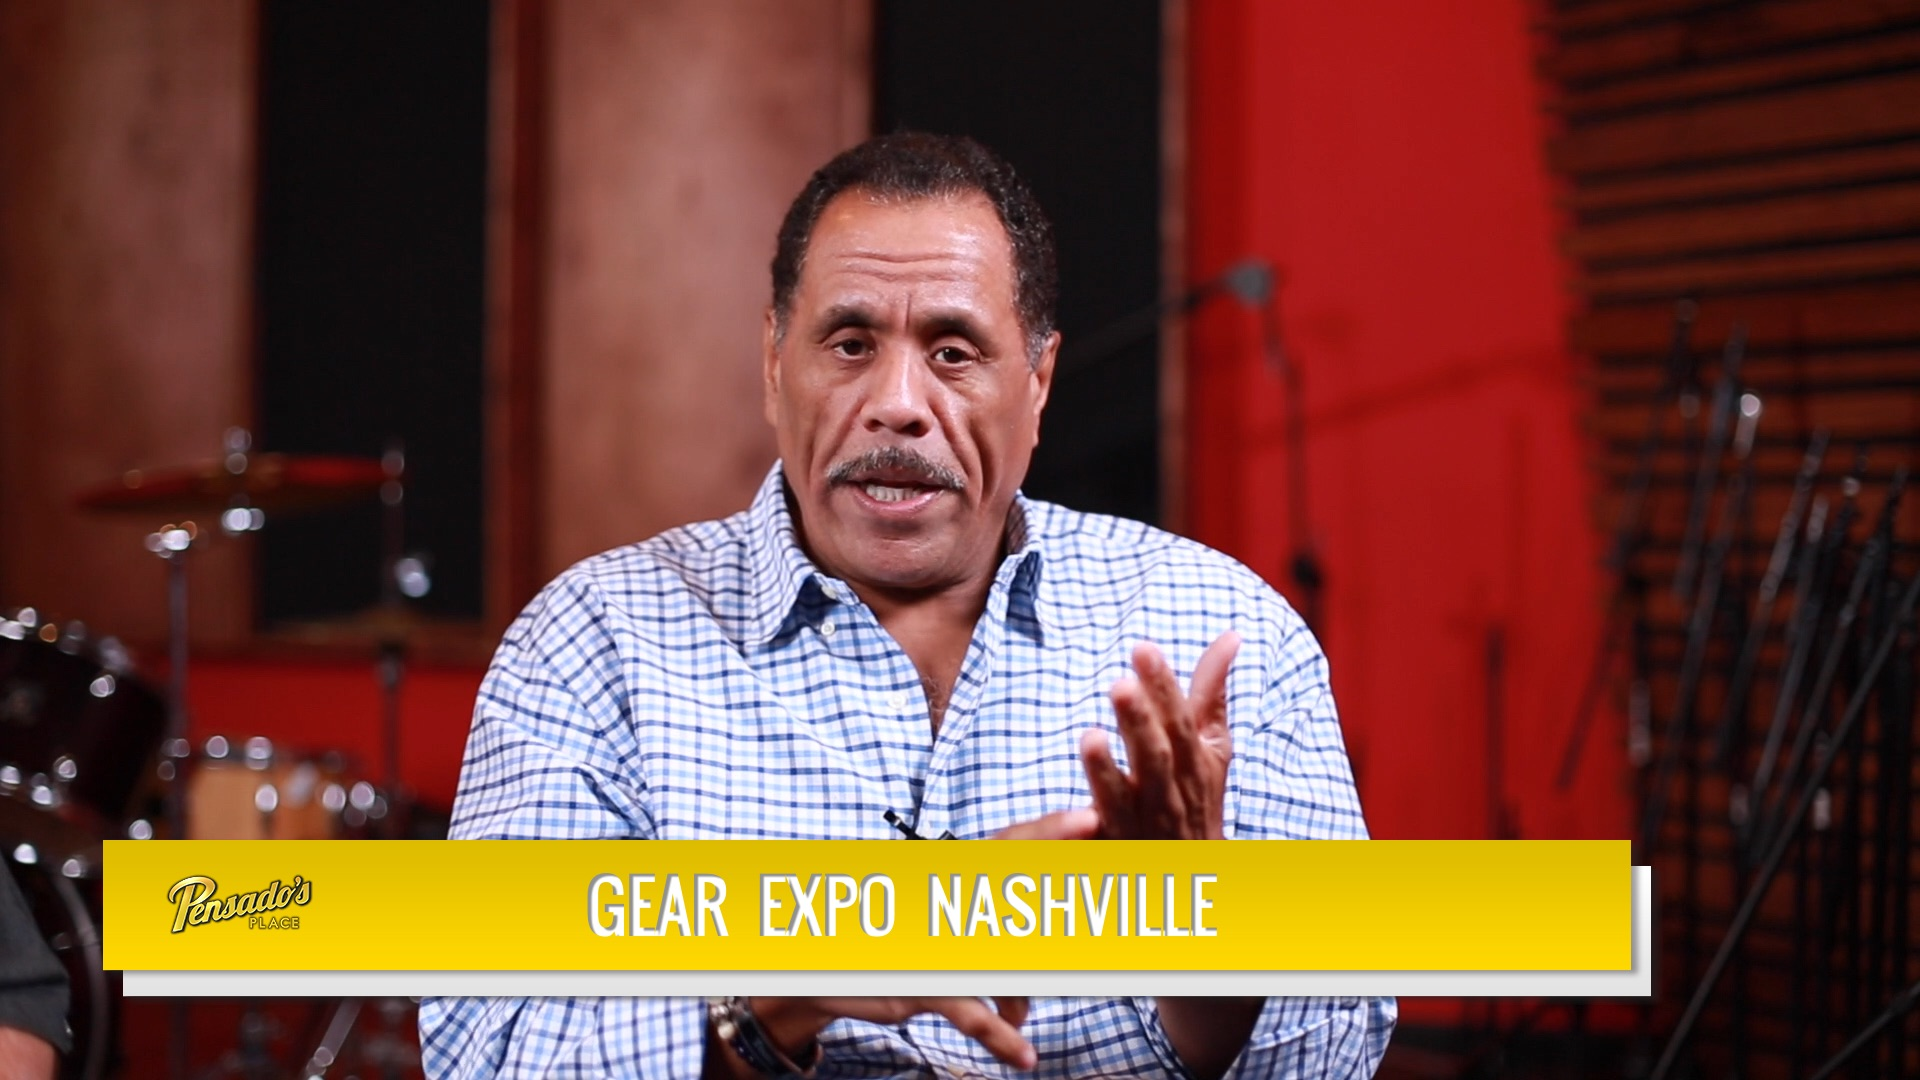 Gear Expo Nashville Preview